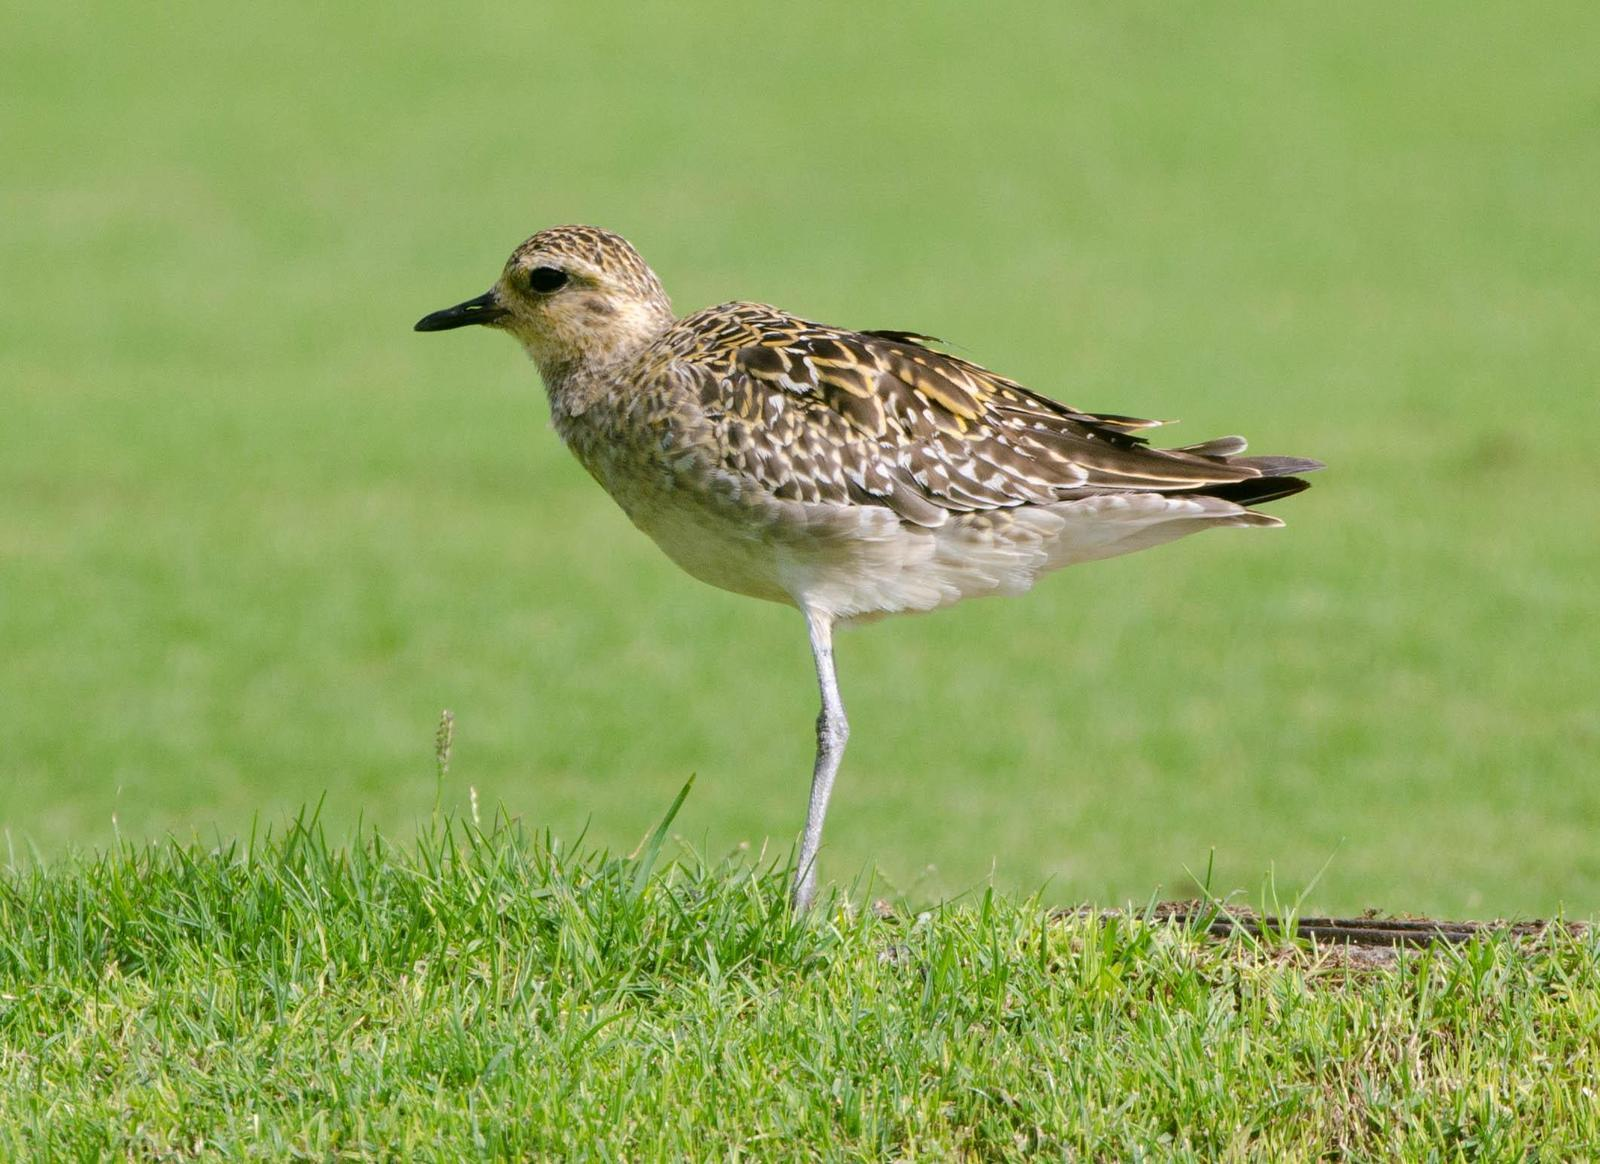 Pacific Golden-Plover Photo by Scott Yerges